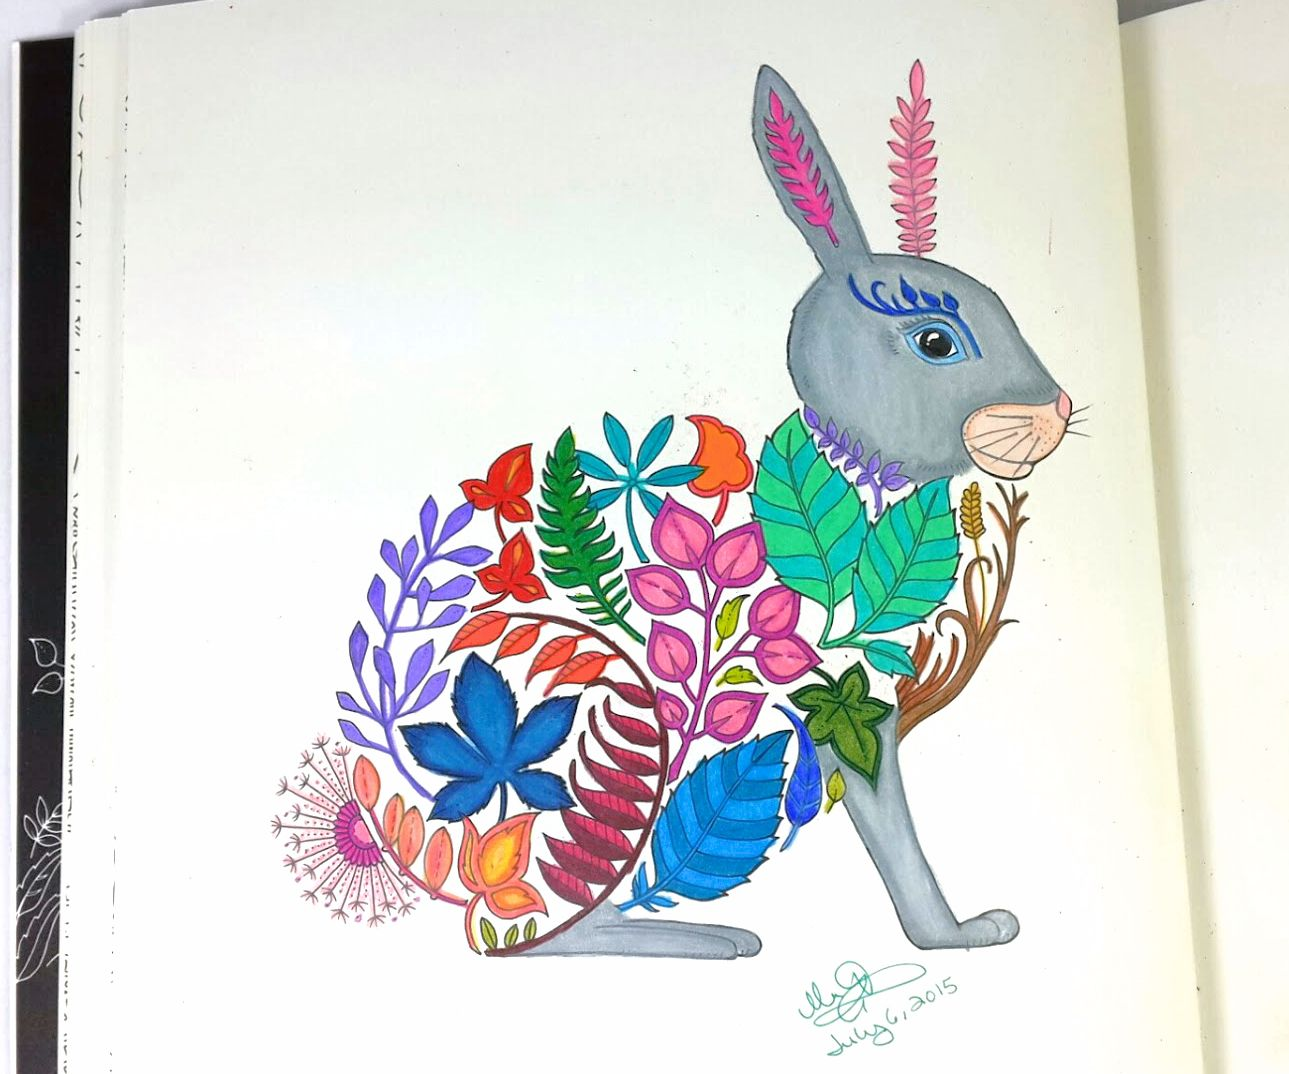 Completely Coloring Page Of Floral Bunny Rabbit From The